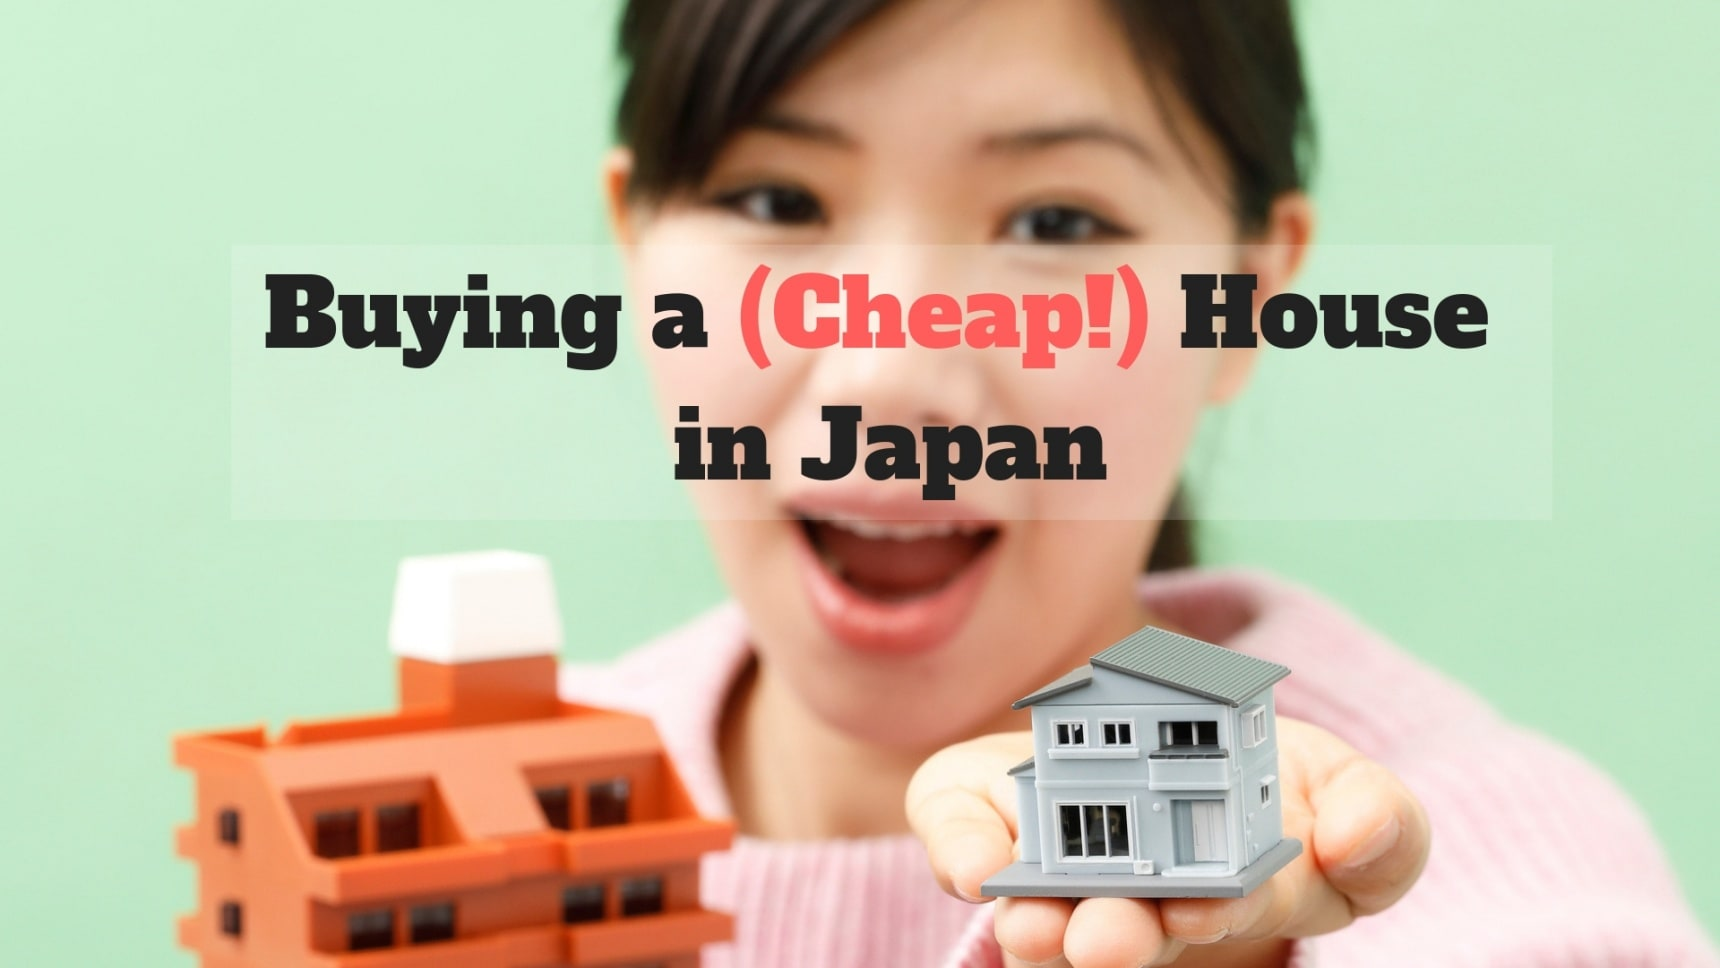 How to Buy a (Cheap!) House in Japan